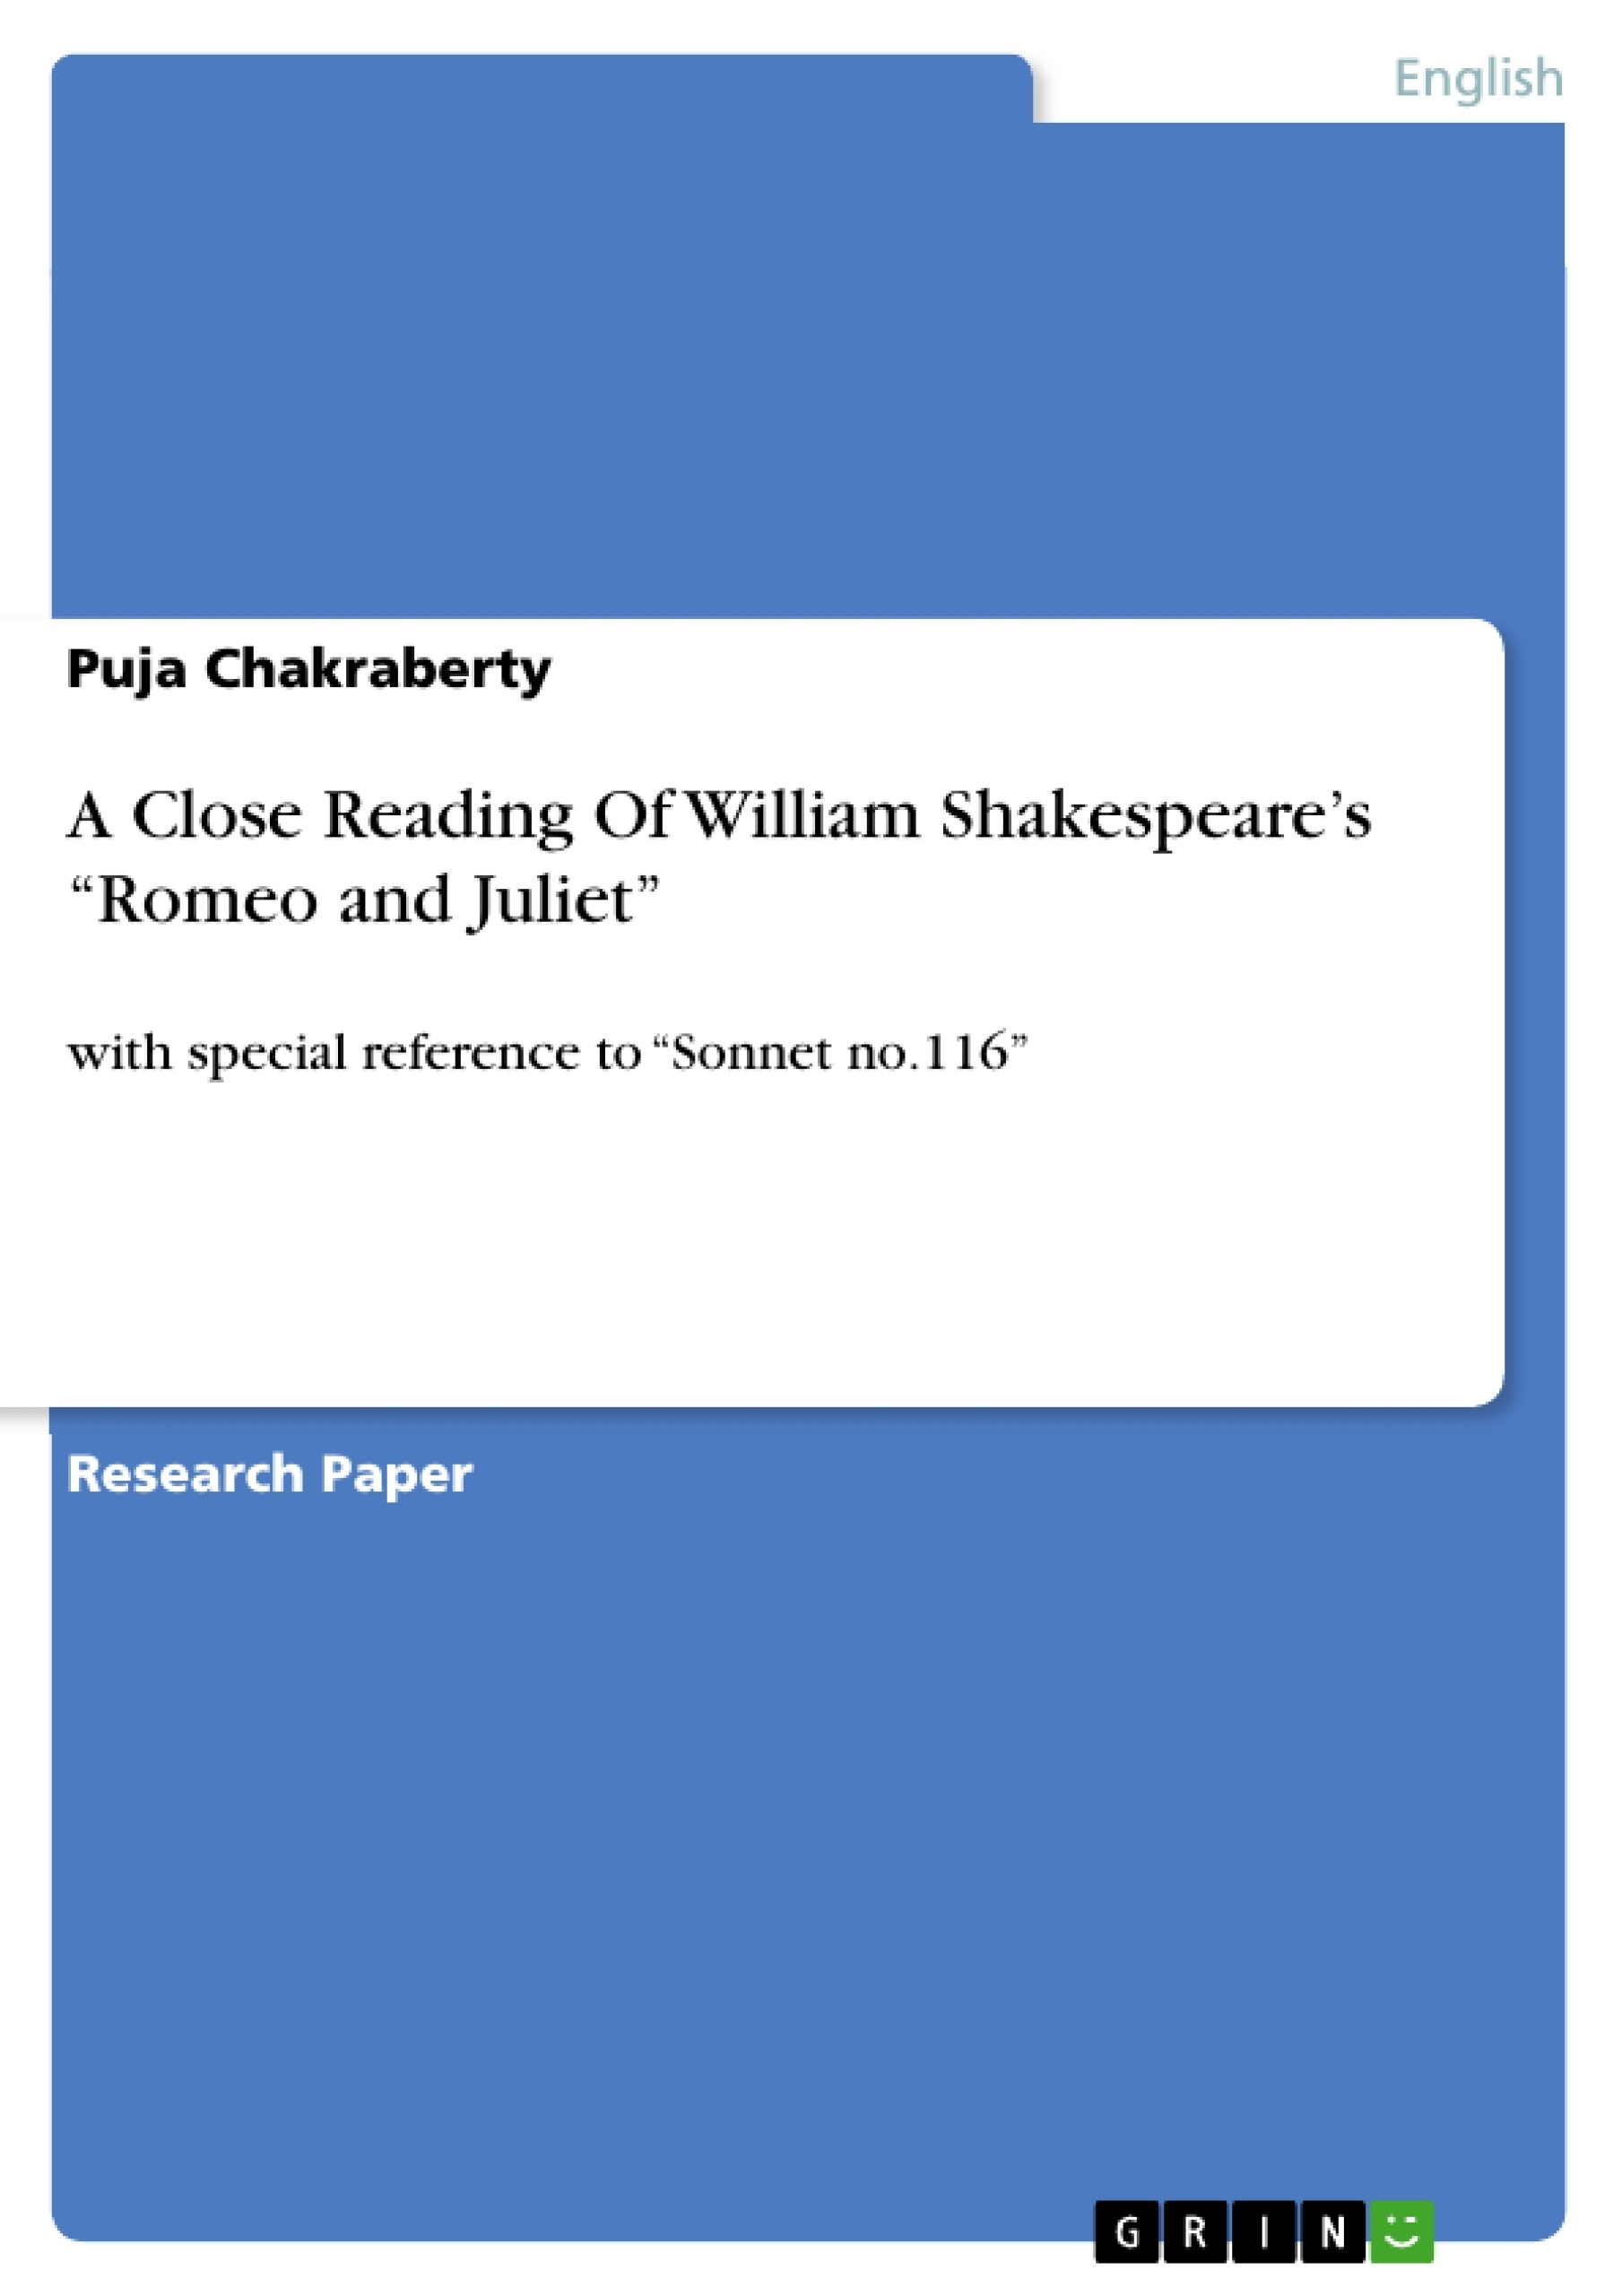 sonnet essay coming to terms poetry essay plan sonnet analysis  a close reading of william shakespeare s romeo and juliet a close reading of william shakespeare elizabeth barrett browning sonnet annotation